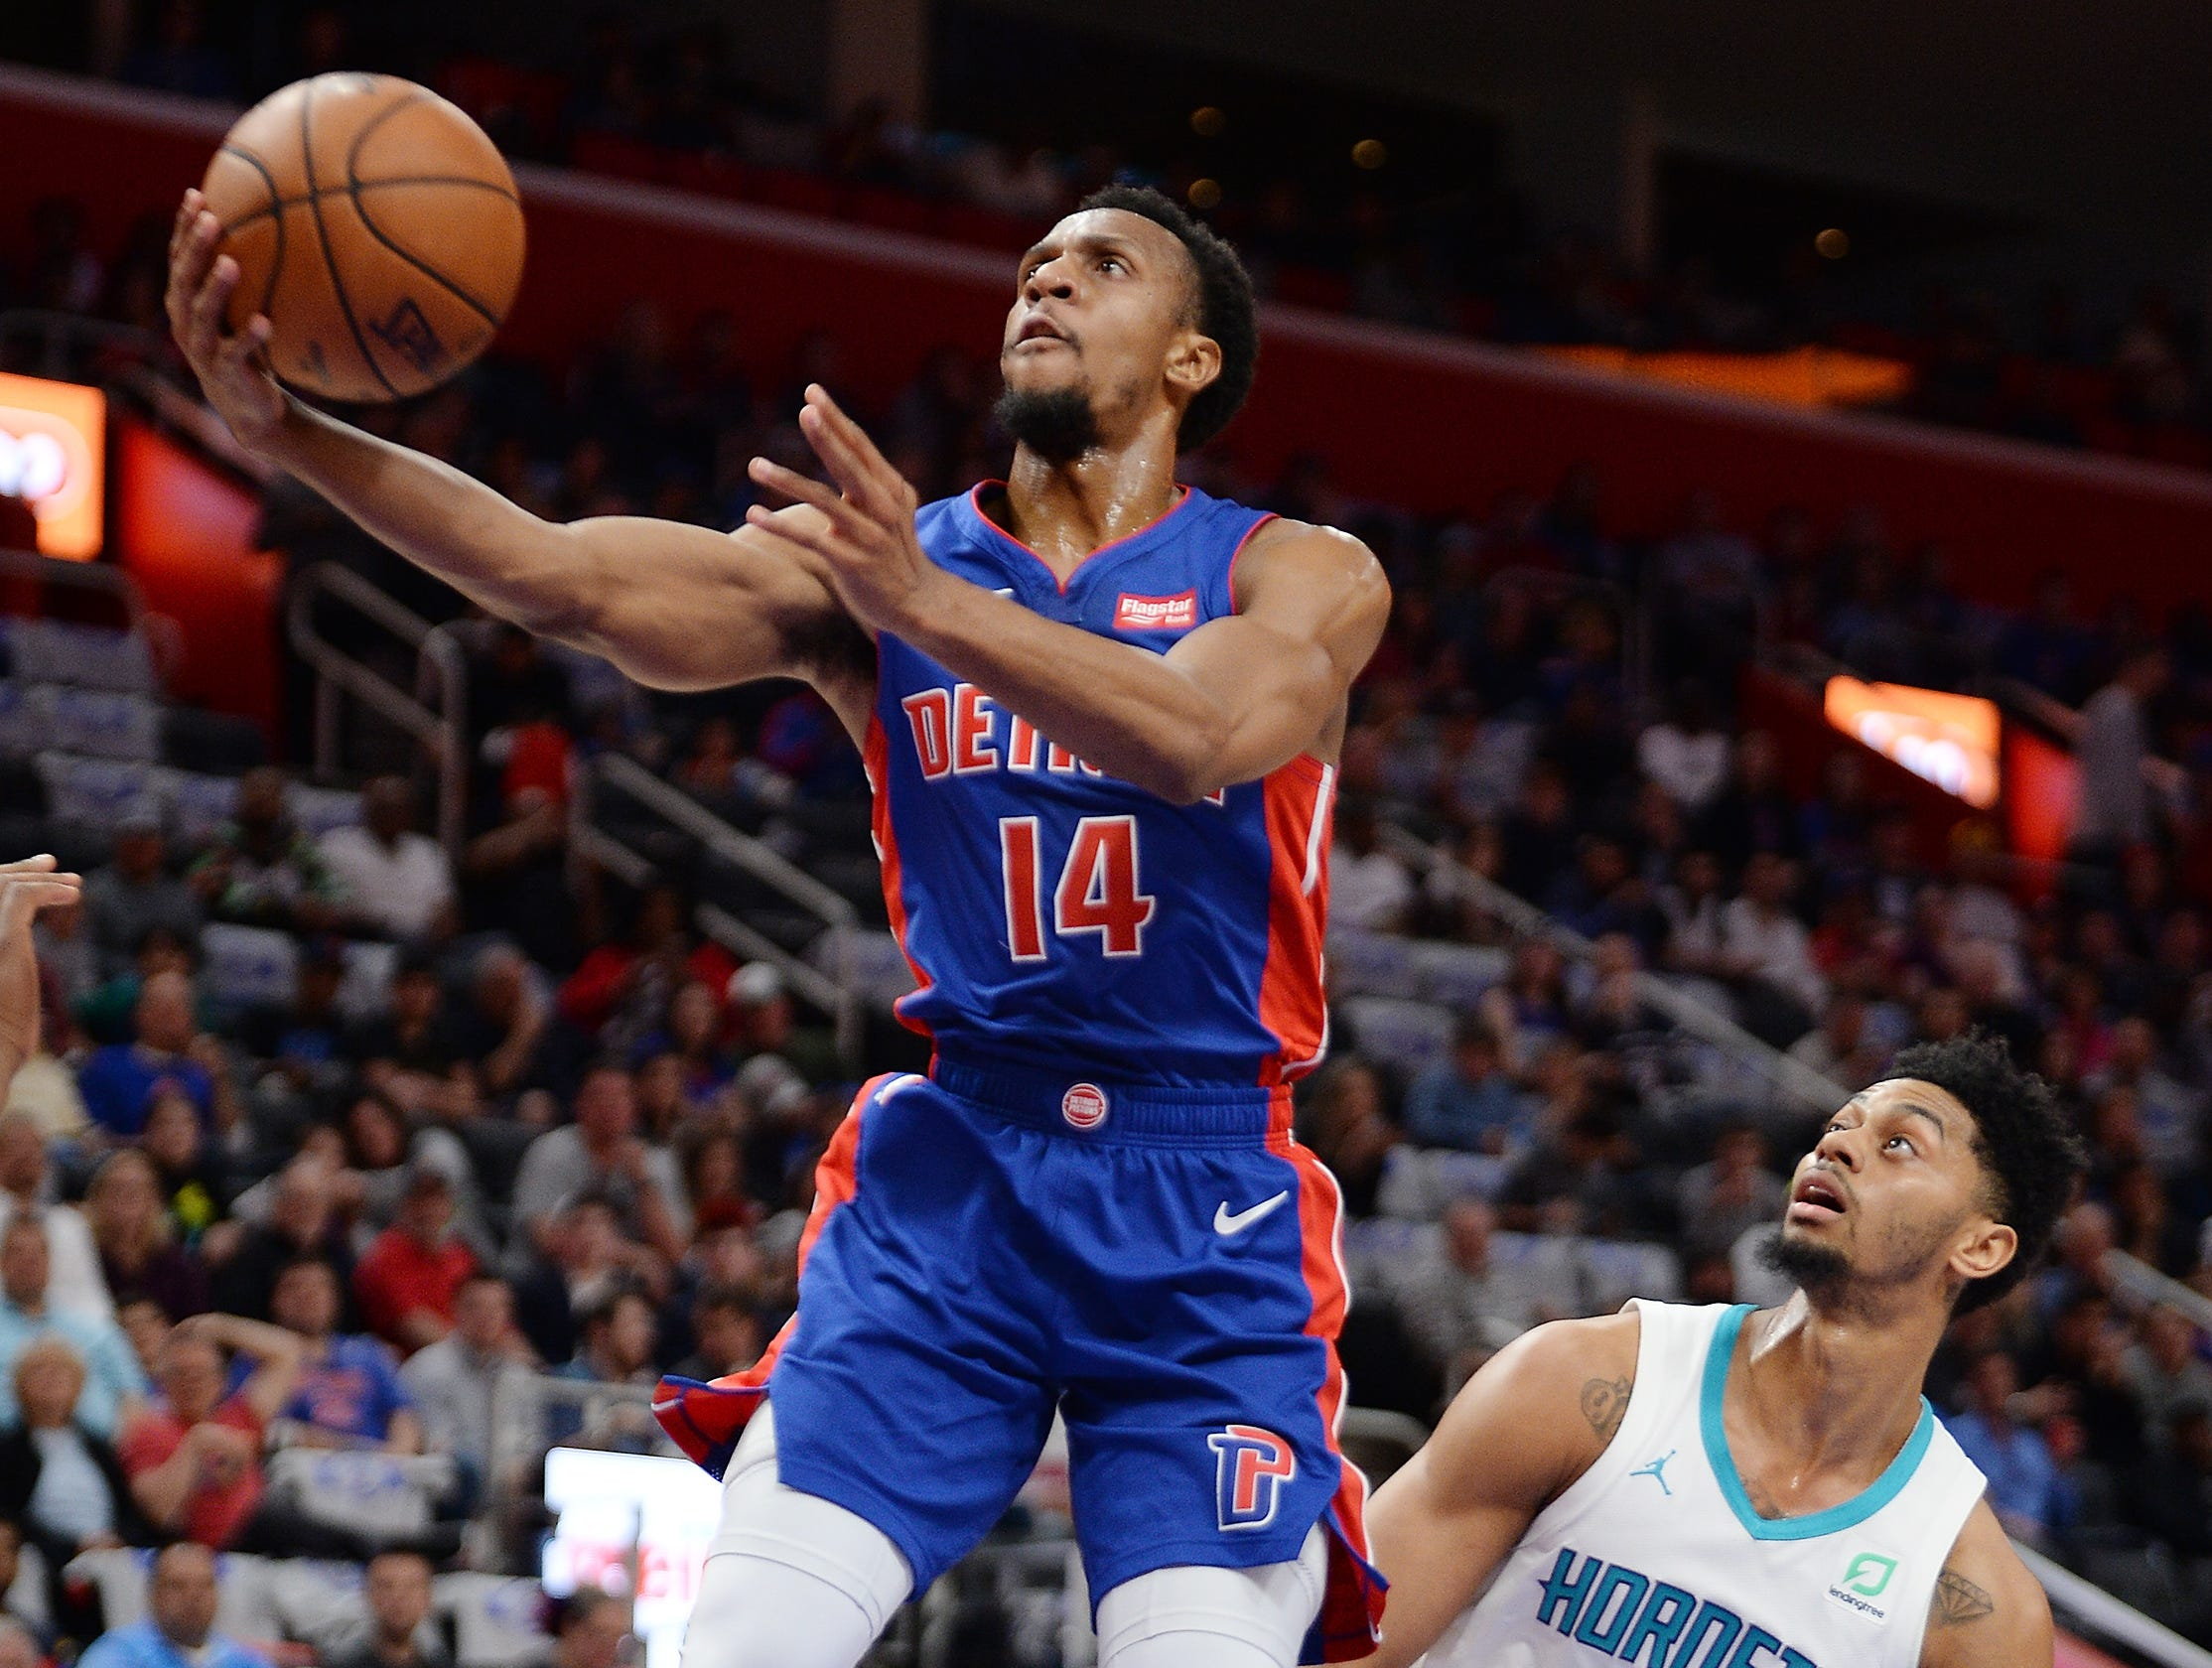 Pistons' Ish Smith scores over Hornets' Jeremy Lamb in the second quarter. Smith led the Pistons with 20 points.